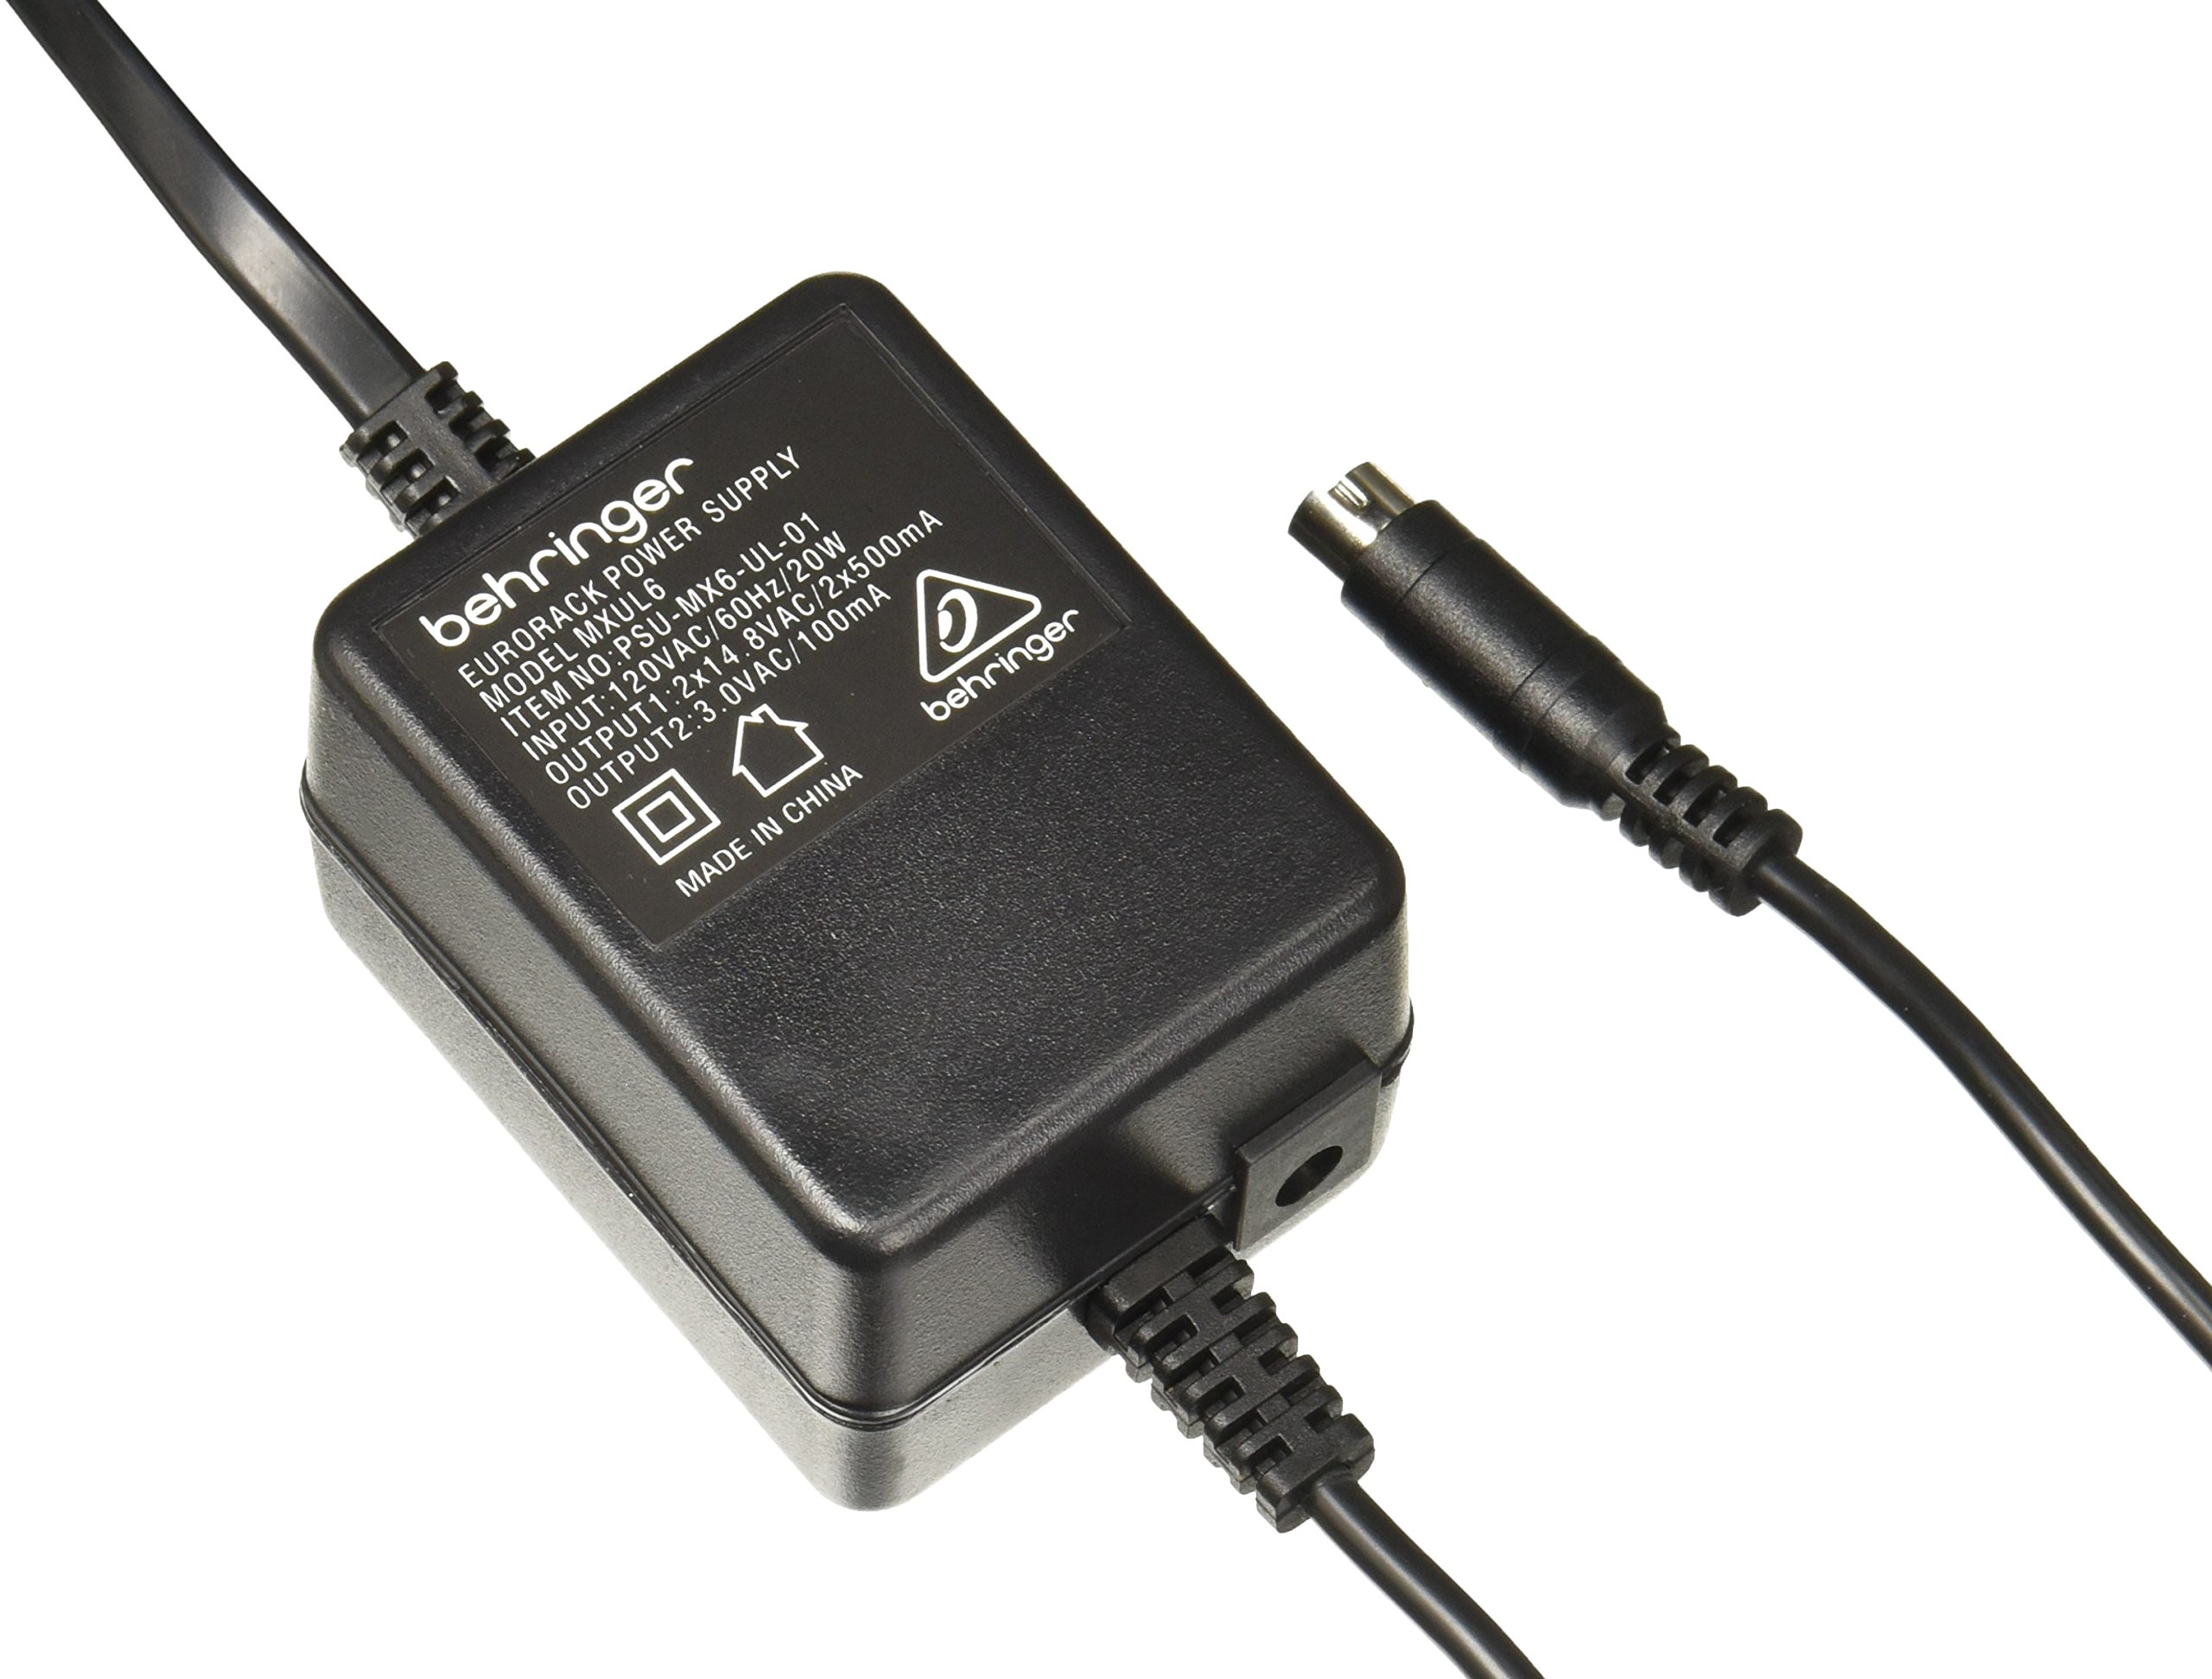 BEHRINGER PSU6-UL 120V Ul Replacement Power Supply for The Ub1002Fx Ub1202Fx 1002Fx and 1202Fx Black (PSU6UL